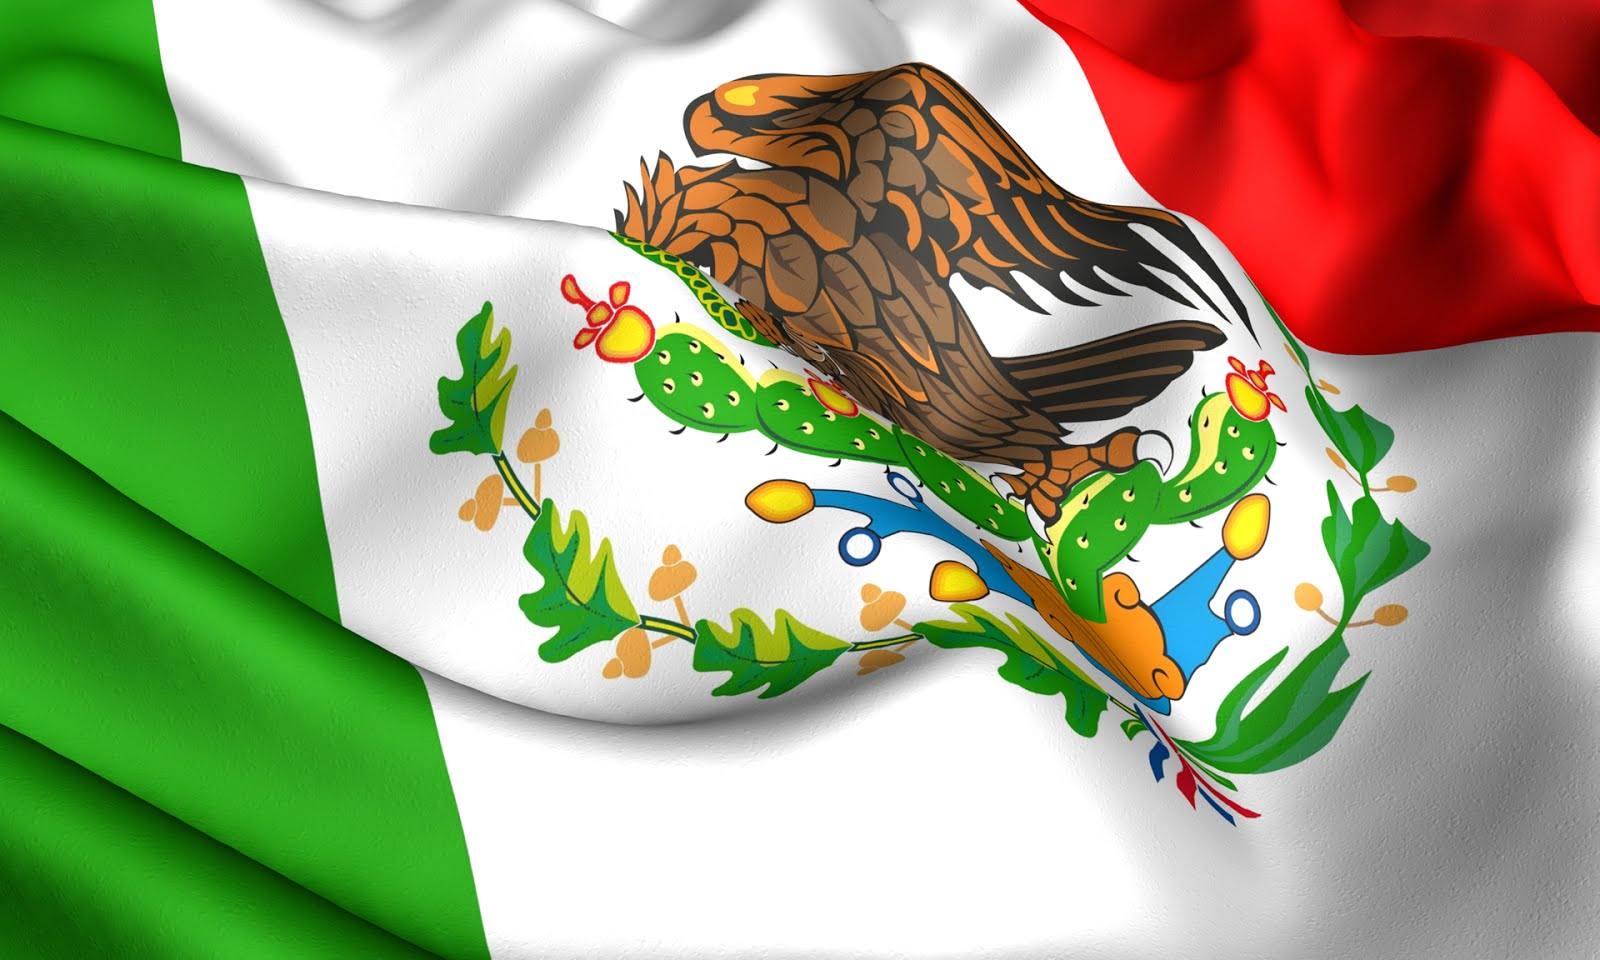 Mexican Flag Eagle (#1624403) - HD Wallpaper & Backgrounds Download